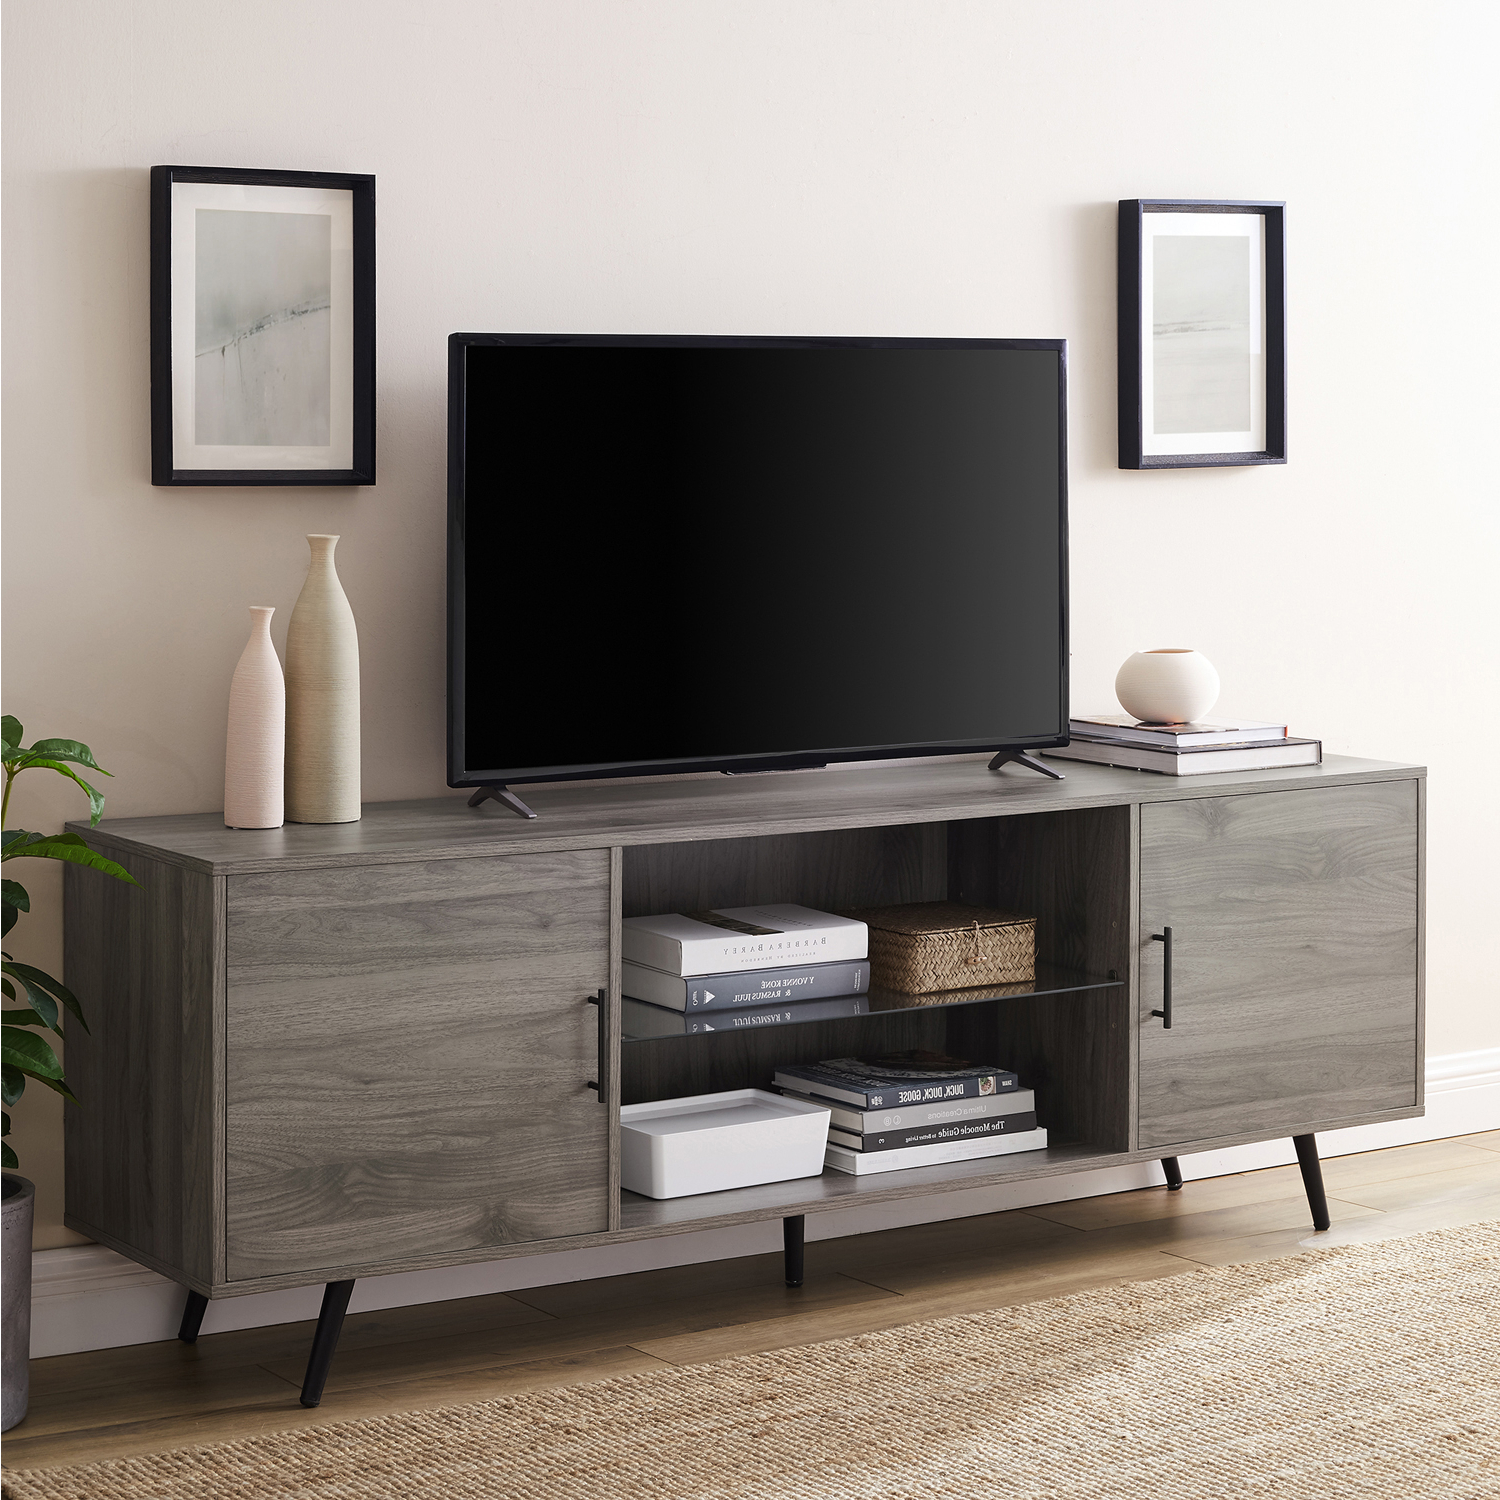 Favorite Wide Tv Stand With Glass Shelf – Pier1 Regarding Orsen Wide Tv Stands (View 2 of 25)